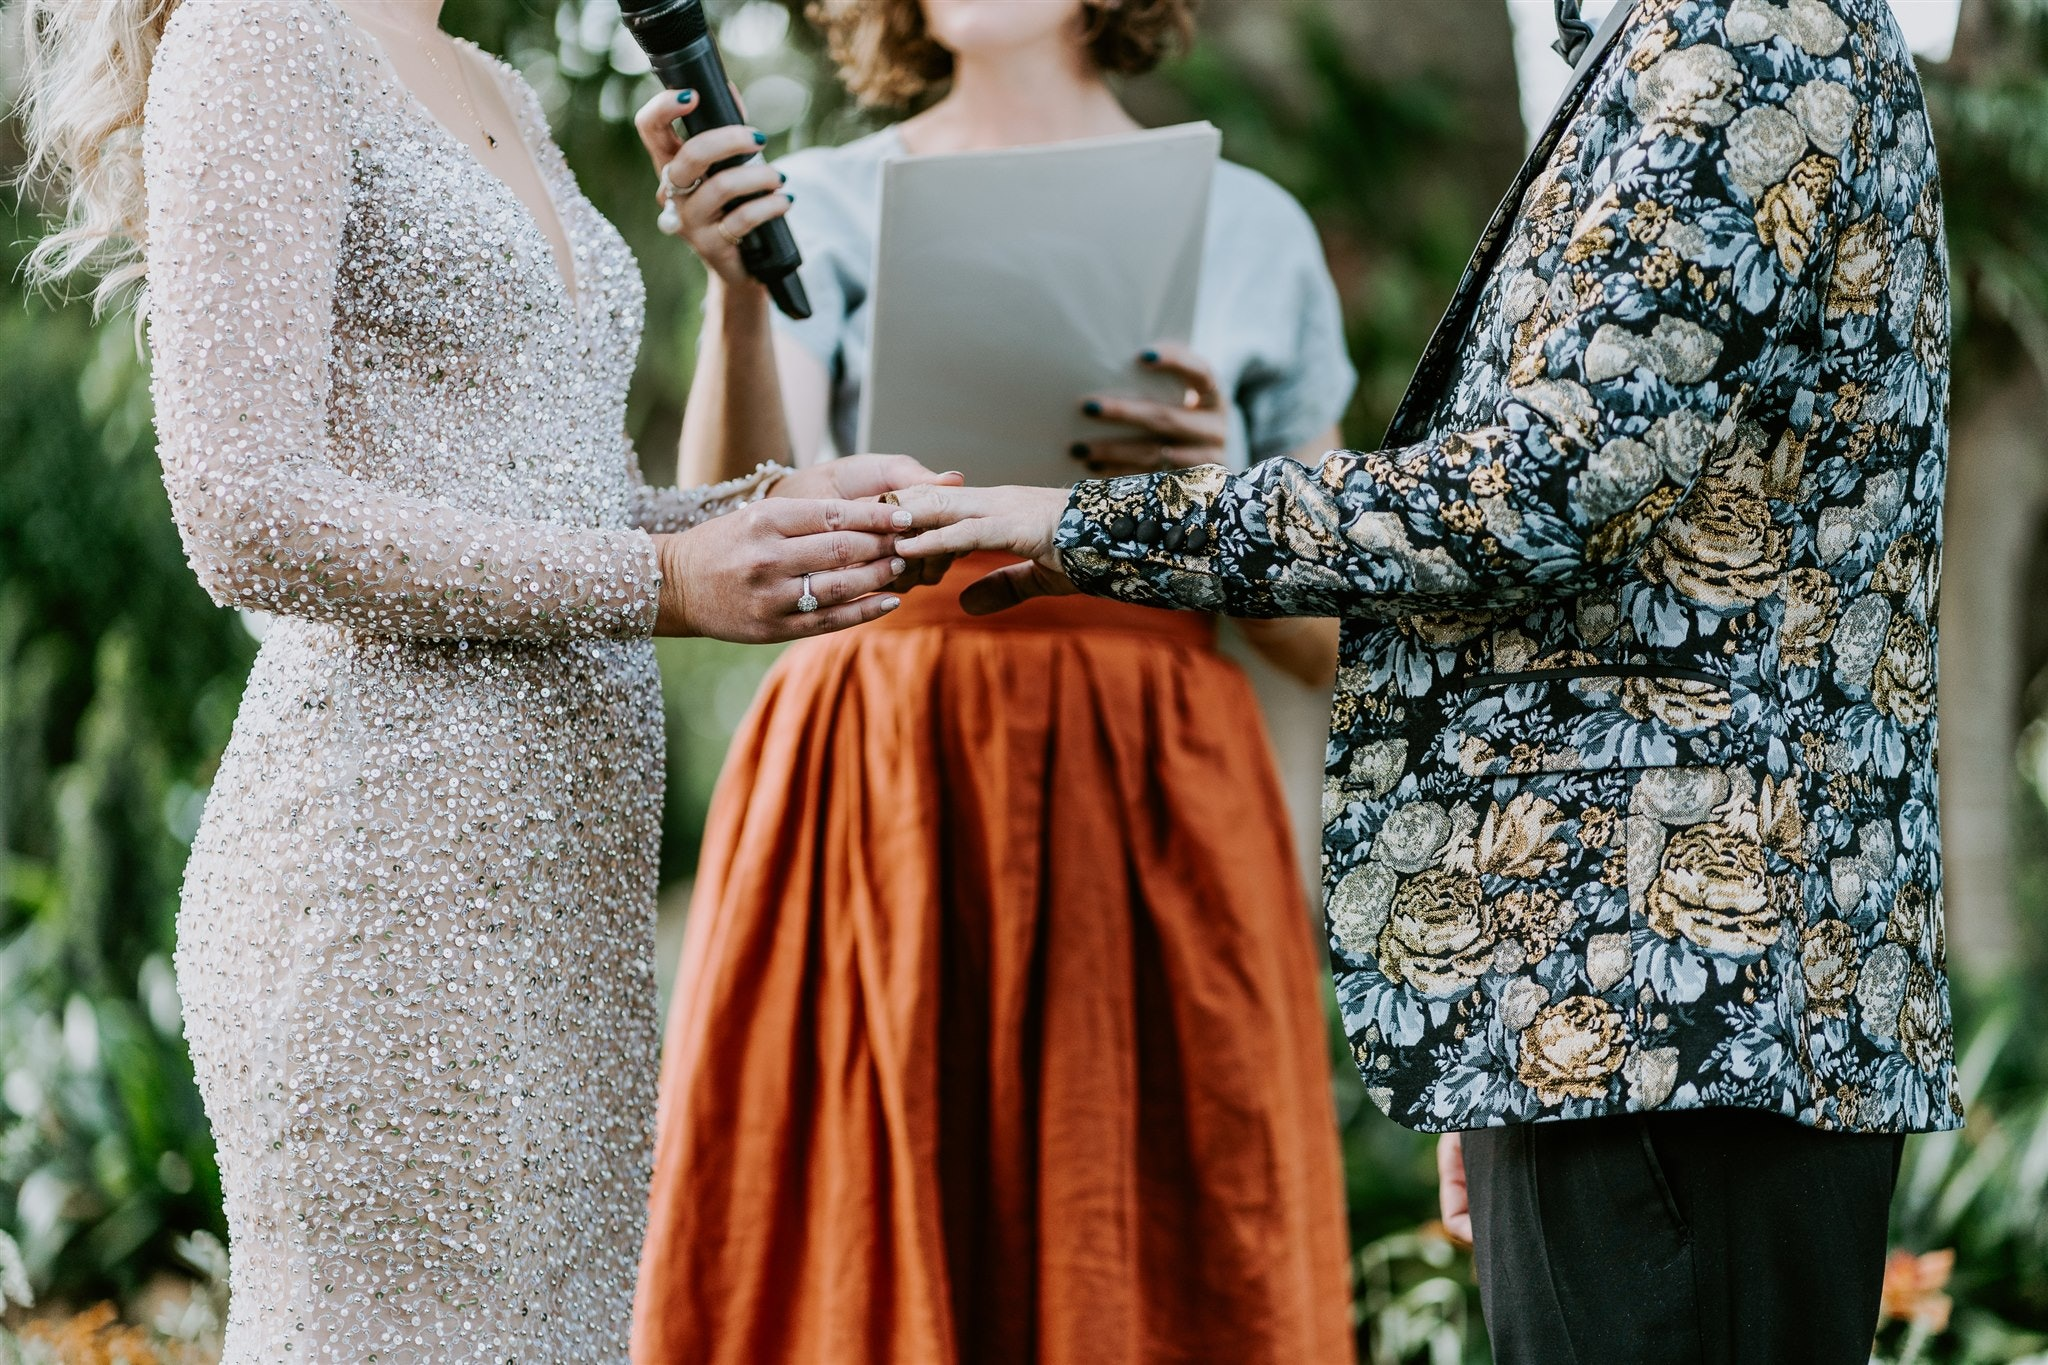 Bride and groom exchanging rings at ceremony